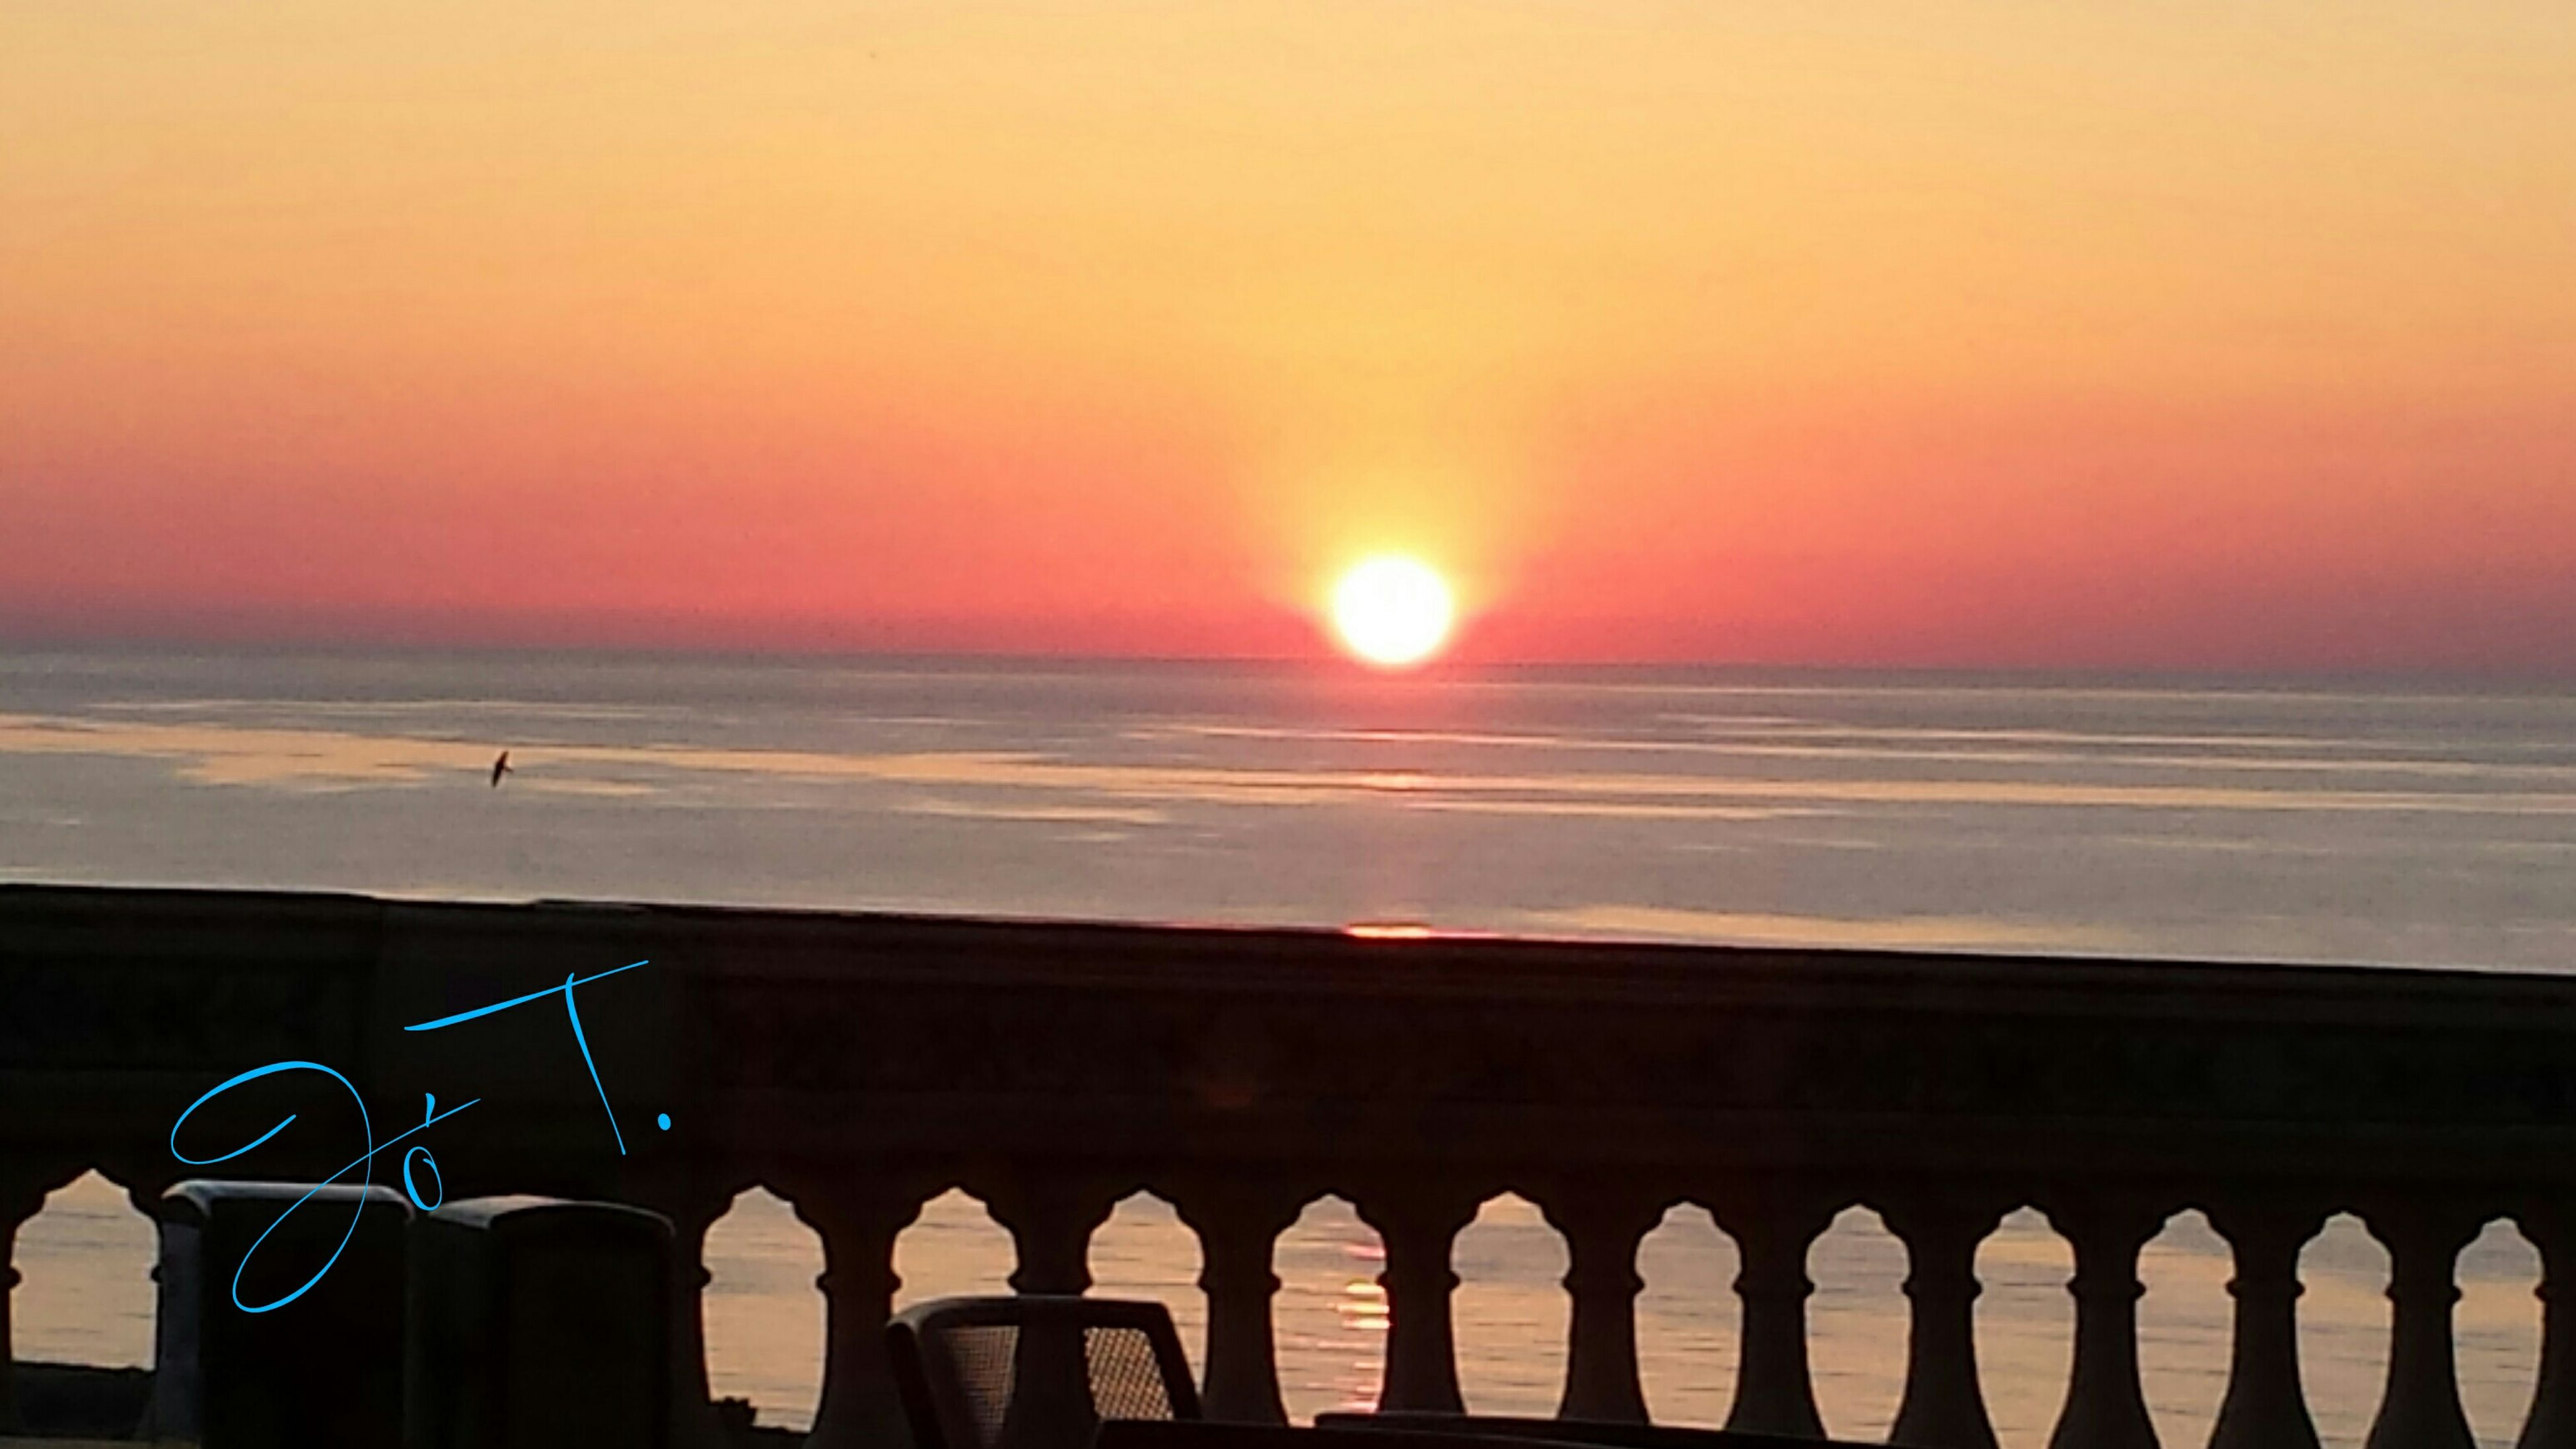 sunset, sea, horizon over water, sun, water, orange color, scenics, beauty in nature, sky, beach, tranquil scene, tranquility, nature, built structure, idyllic, copy space, railing, clear sky, architecture, silhouette